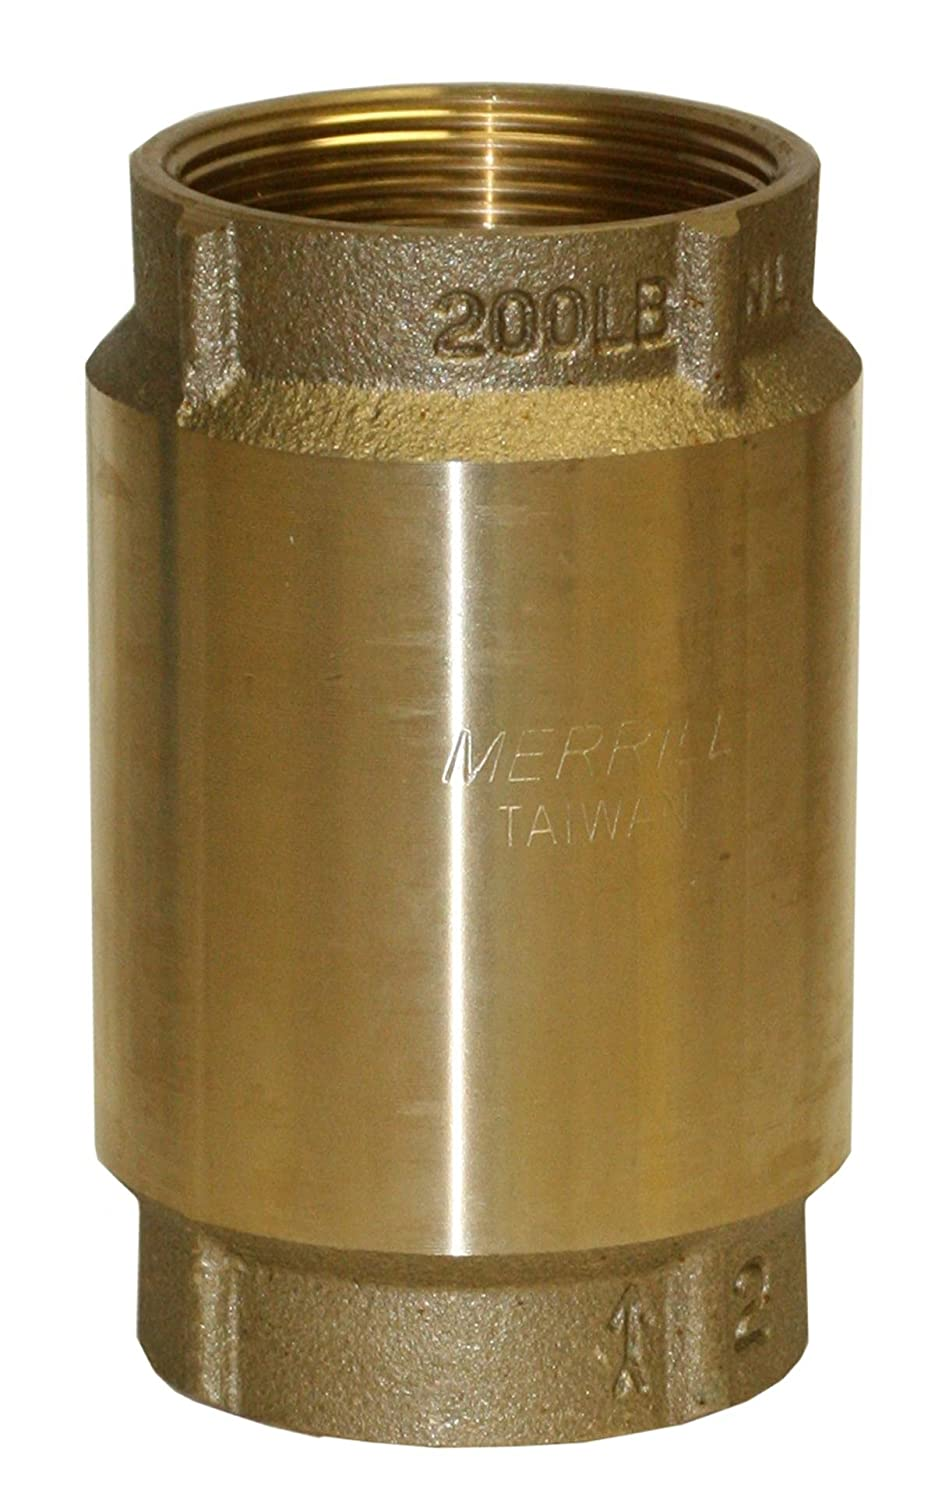 "Merrill MFG CVNL200 700 Series No Lead Brass Check Valve, Pipe Size 2"", No Spin Poppet, 4.73"""